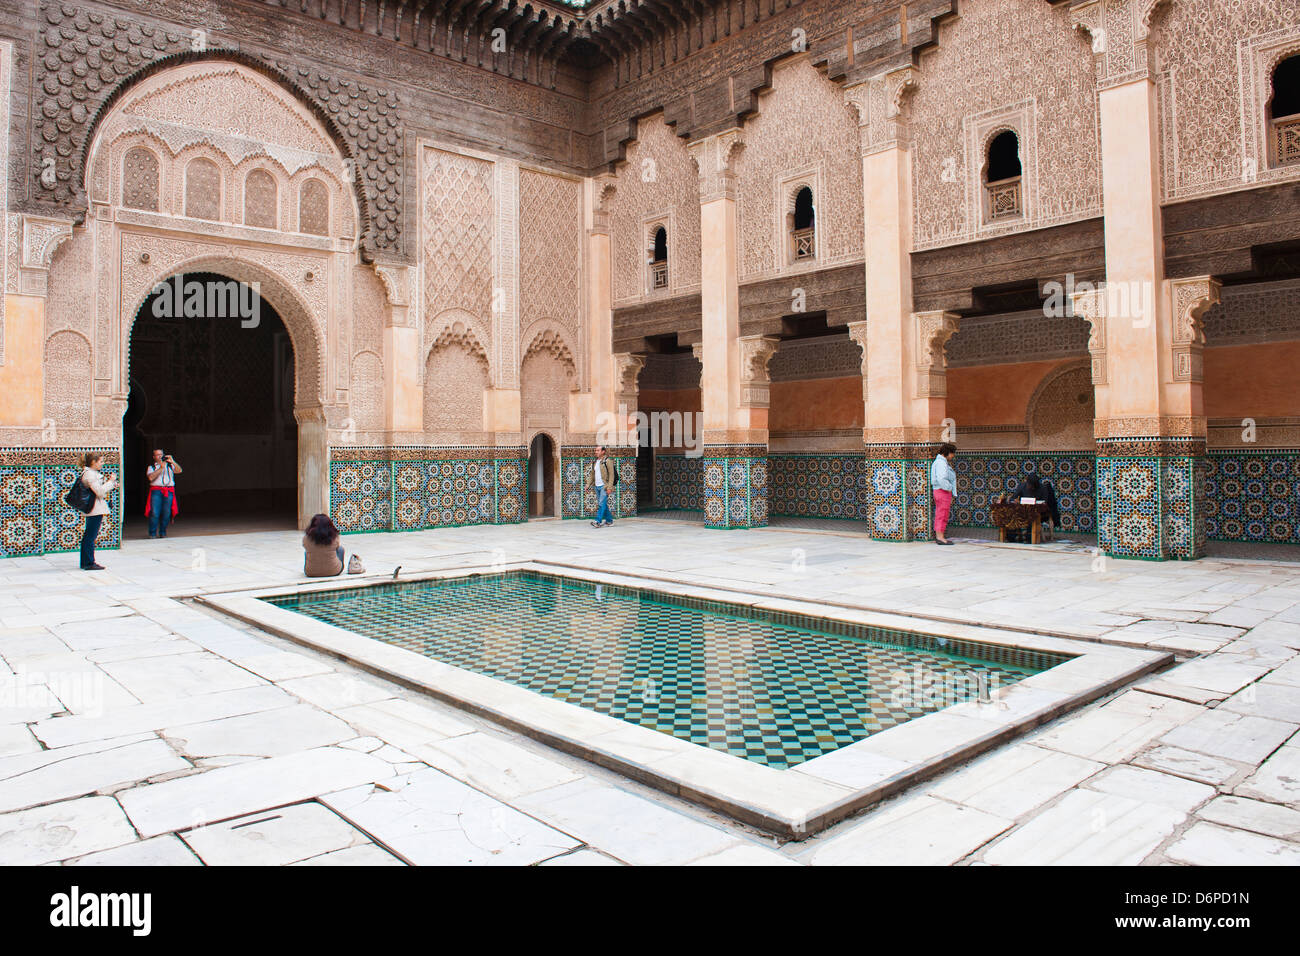 Tourists visiting Medersa Ben Youssef, the old Islamic school, Old Medina, Marrakech, Morocco, North Africa, Africa - Stock Image